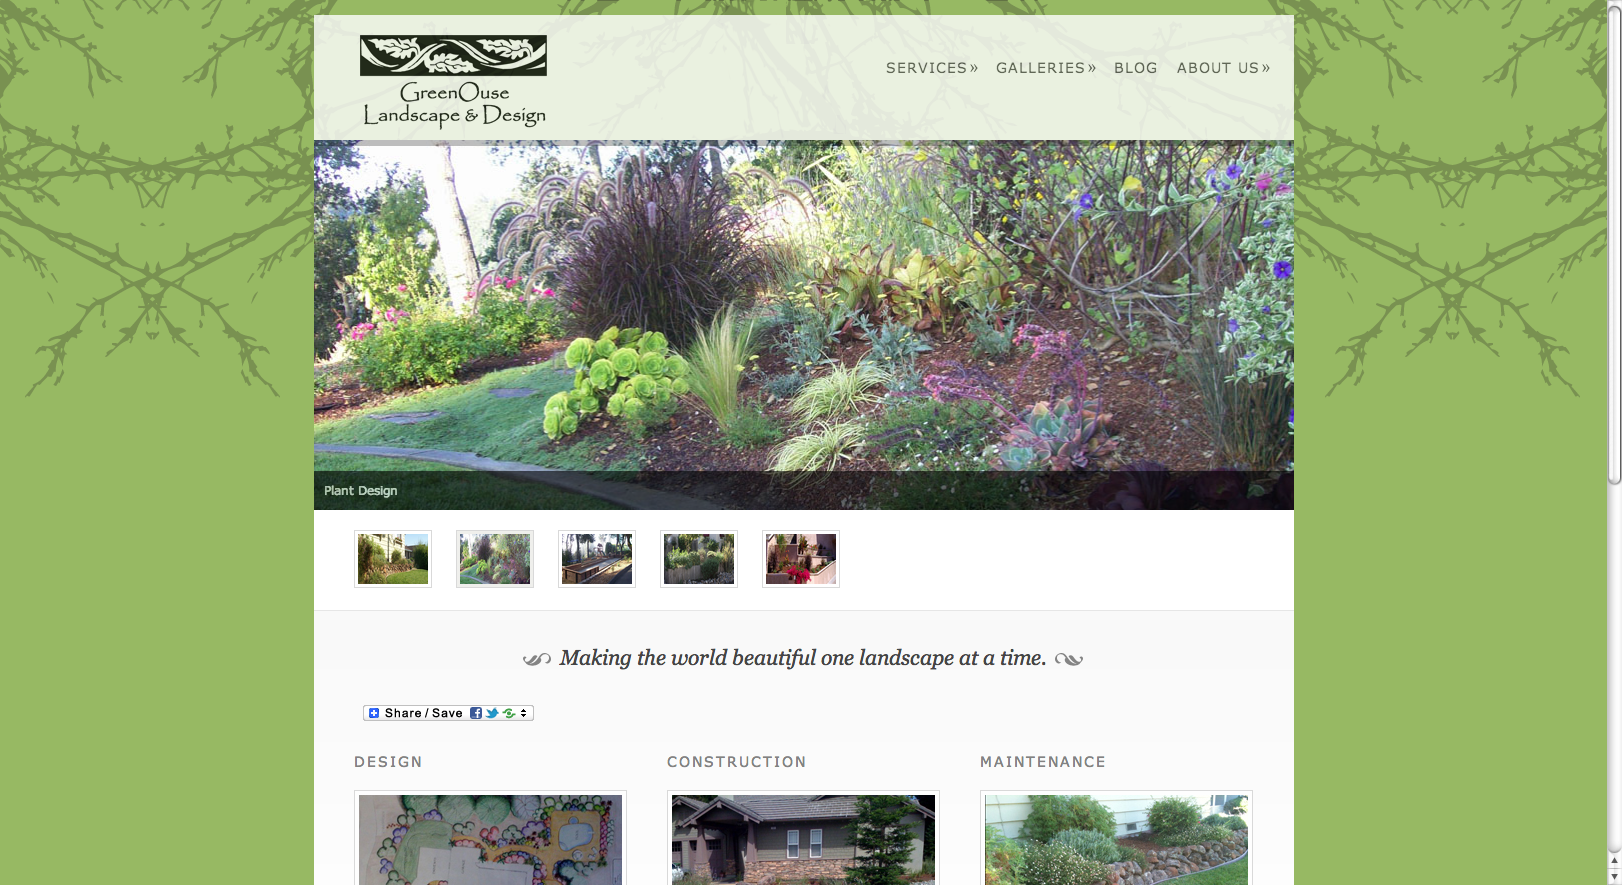 GreenOuse Landscape & Design